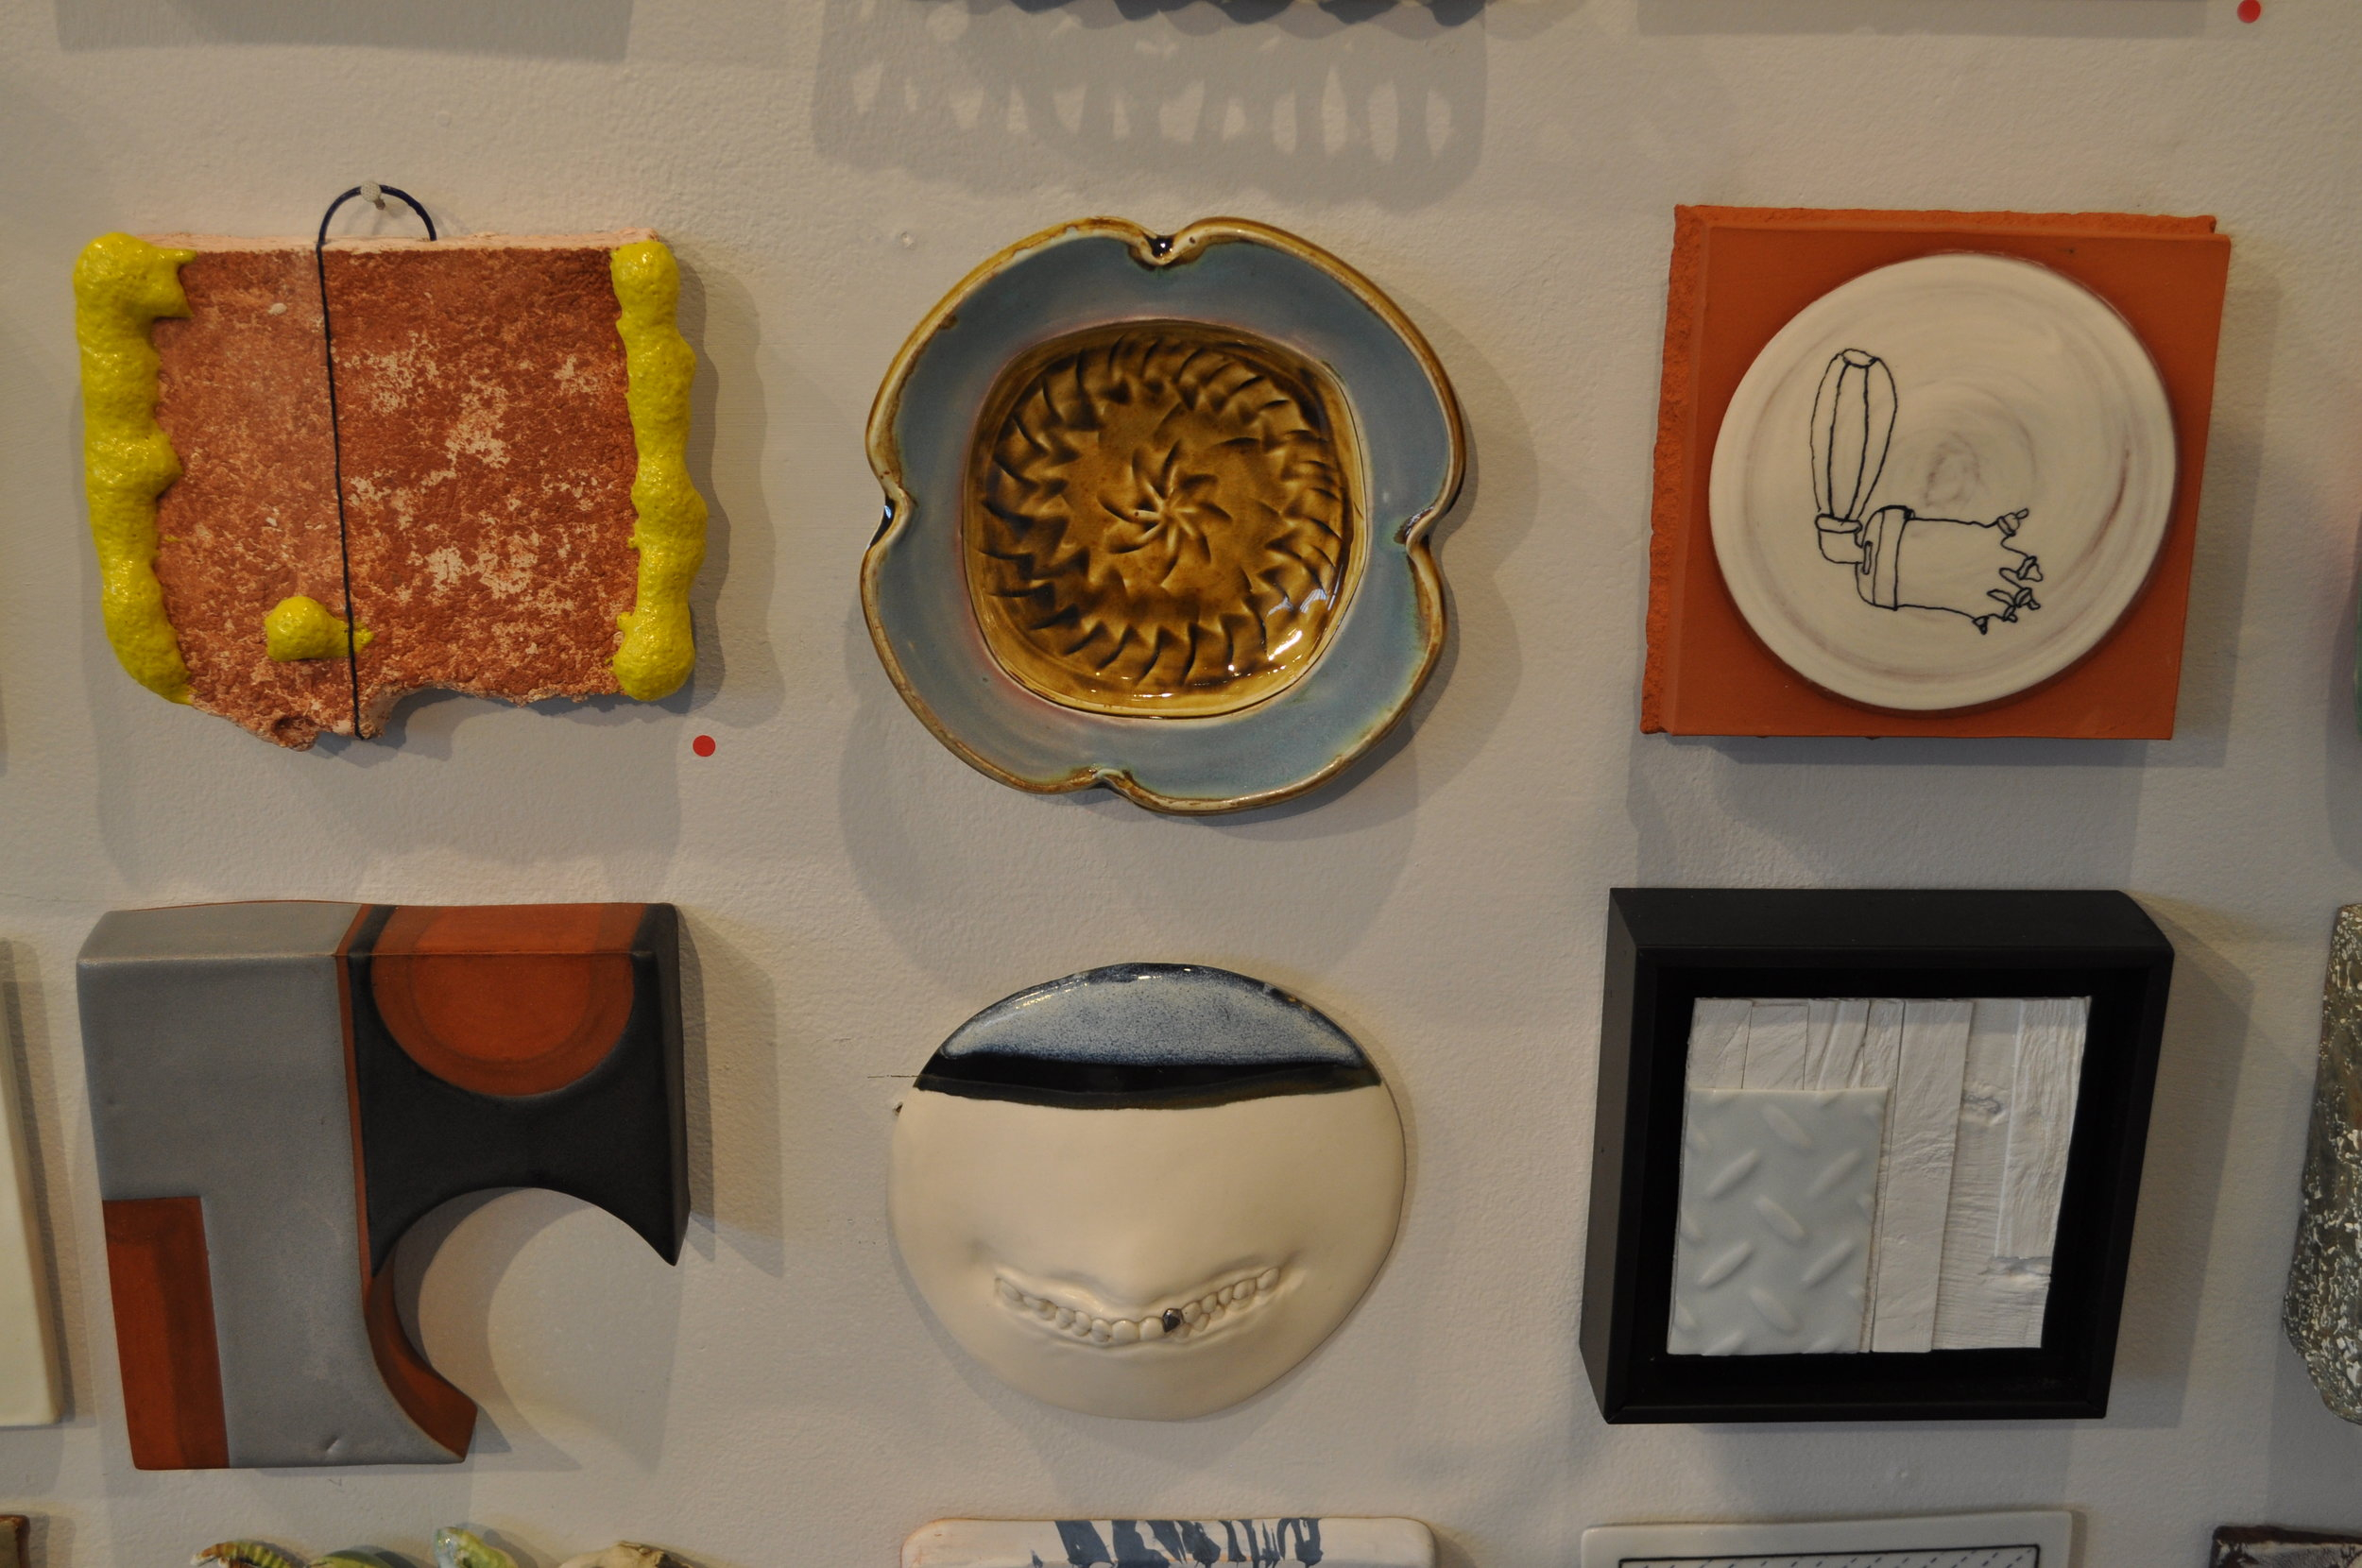 1 . Max Seinfeld,  Composition Study  SOLD  2. Gertrude Graham Smith, Squared Plate/Tile  $42  3.  Matthew Wilt, Hearing Machine  $150  4. Logan Wall,  Wall Tile #3  SOLD  5. Ginny Waters,  Kissing The Lipless 1 (round & black )  $45  6.  Bryan Hopkins,  Tile 1  $95